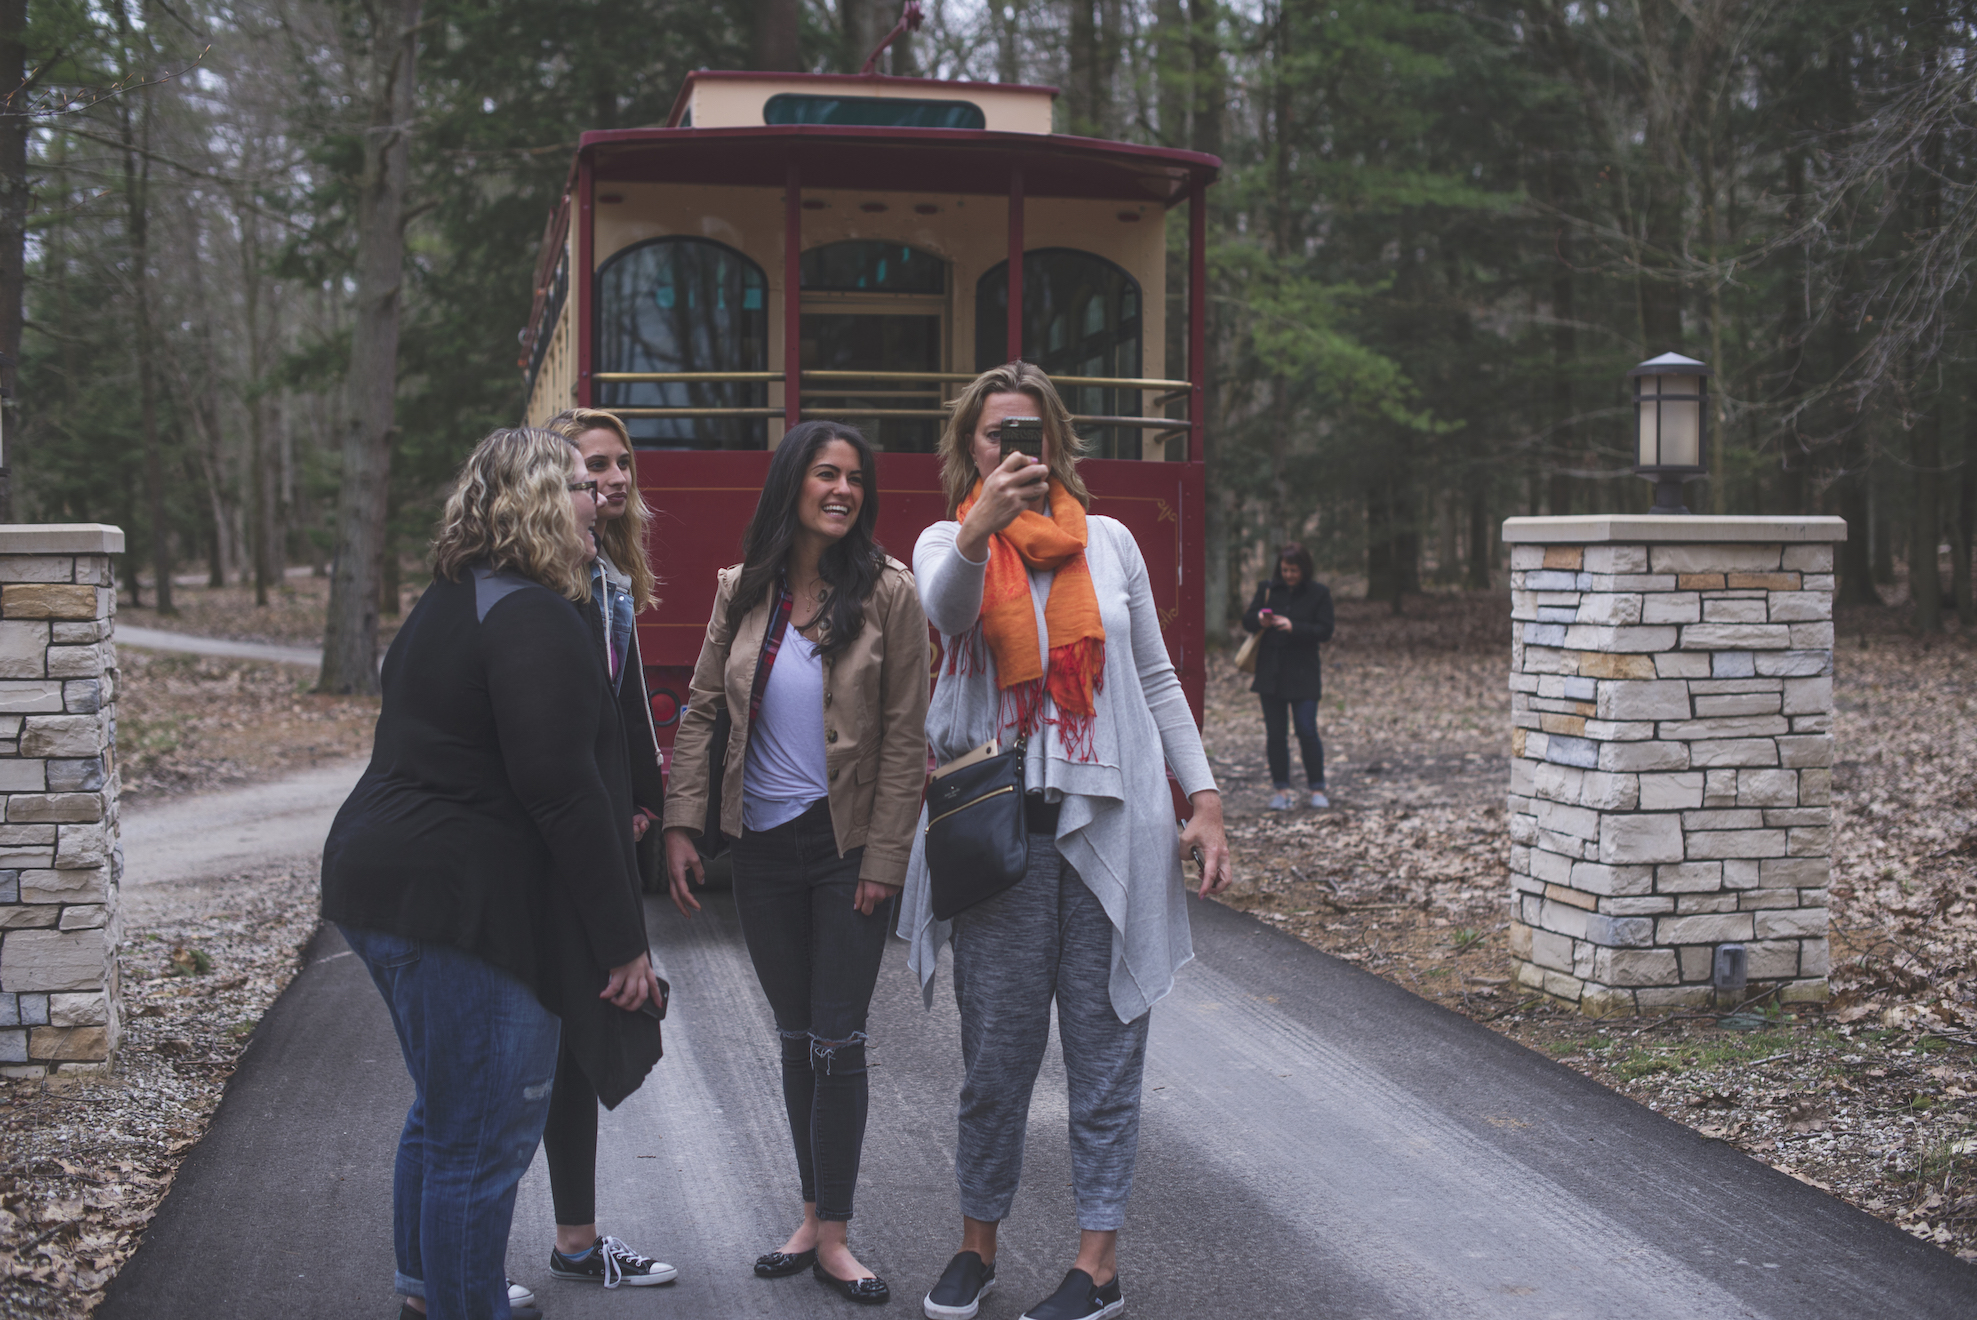 The Best Michigan Vacation I've Ever Taken + 10 Life Lessons I Learned | #FreshCoastRetreat